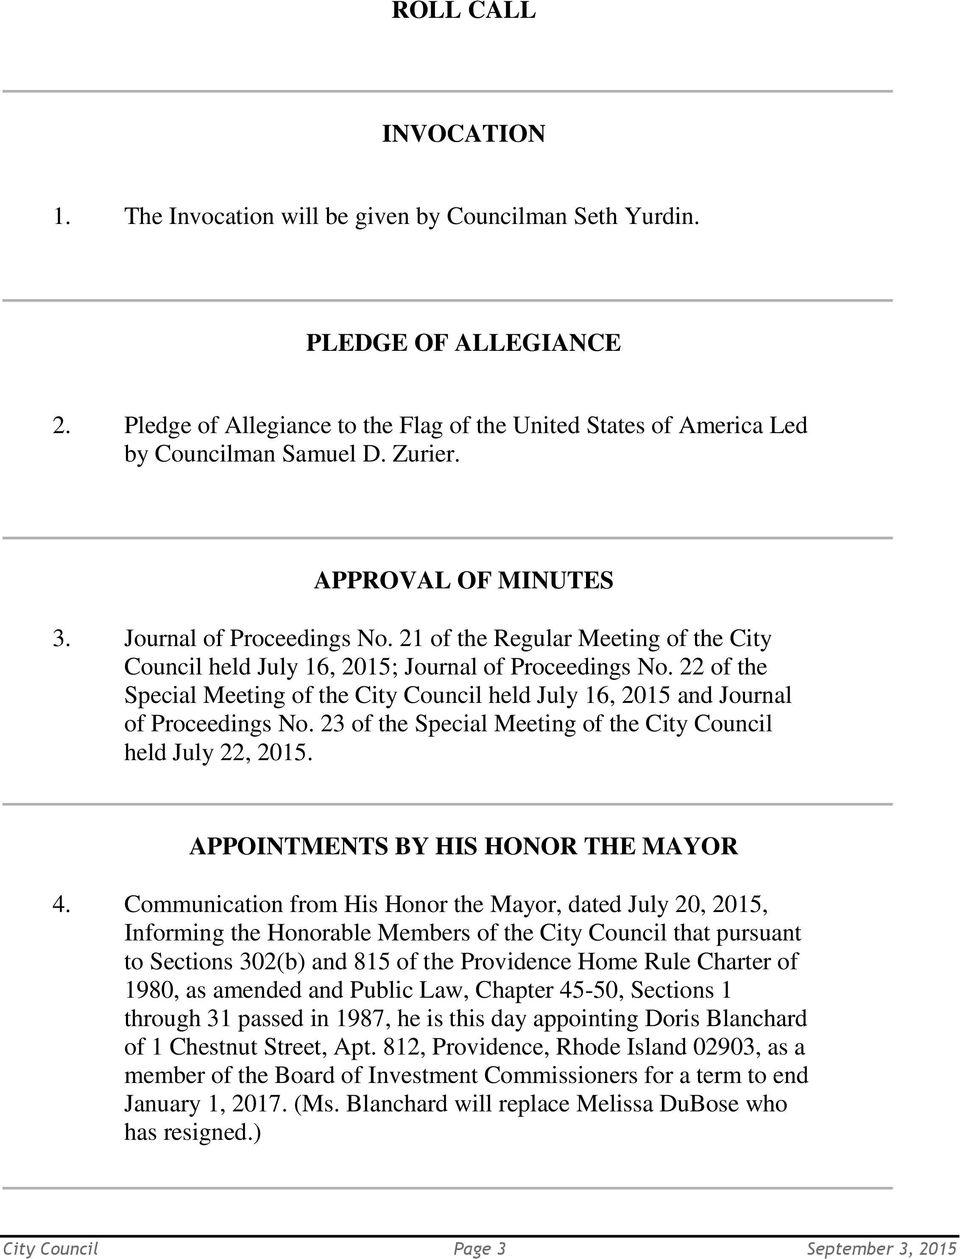 22 of the Special Meeting of the City Council held July 16, 2015 and Journal of Proceedings No. 23 of the Special Meeting of the City Council held July 22, 2015. APPOINTMENTS BY HIS HONOR THE MAYOR 4.